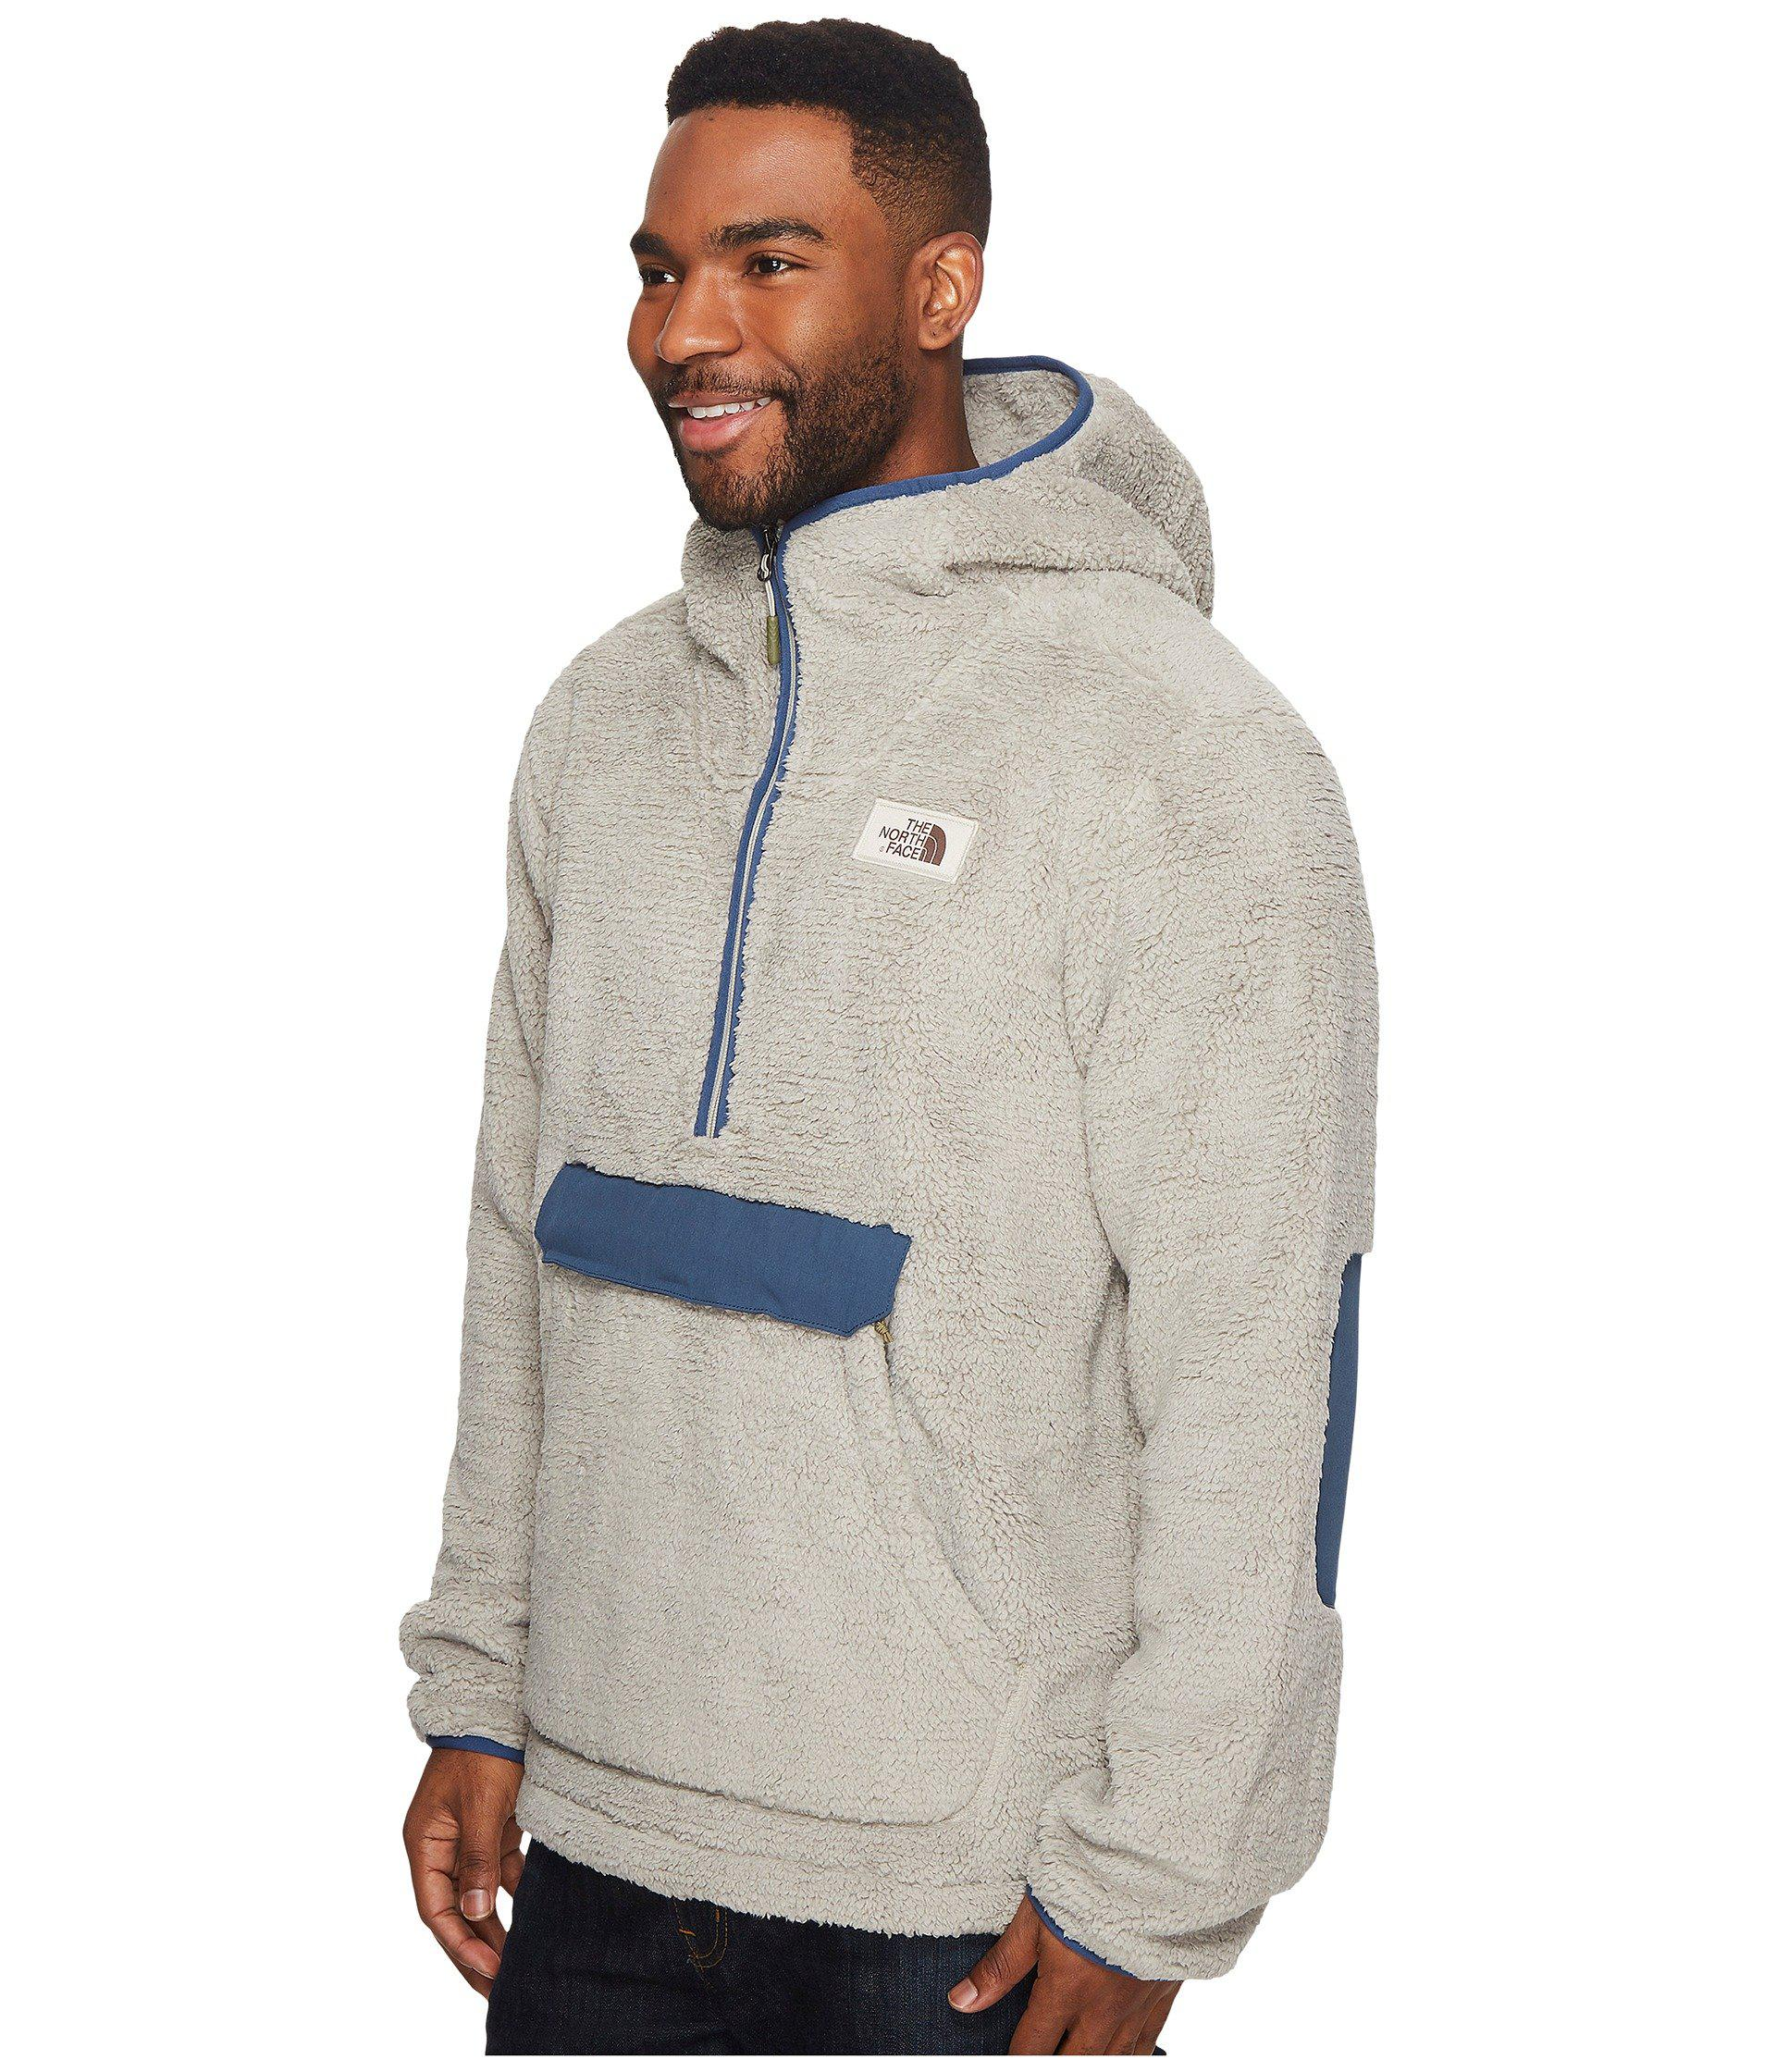 877a861cdf51 Lyst - The North Face Campshire Pullover Hoodie in Gray for Men